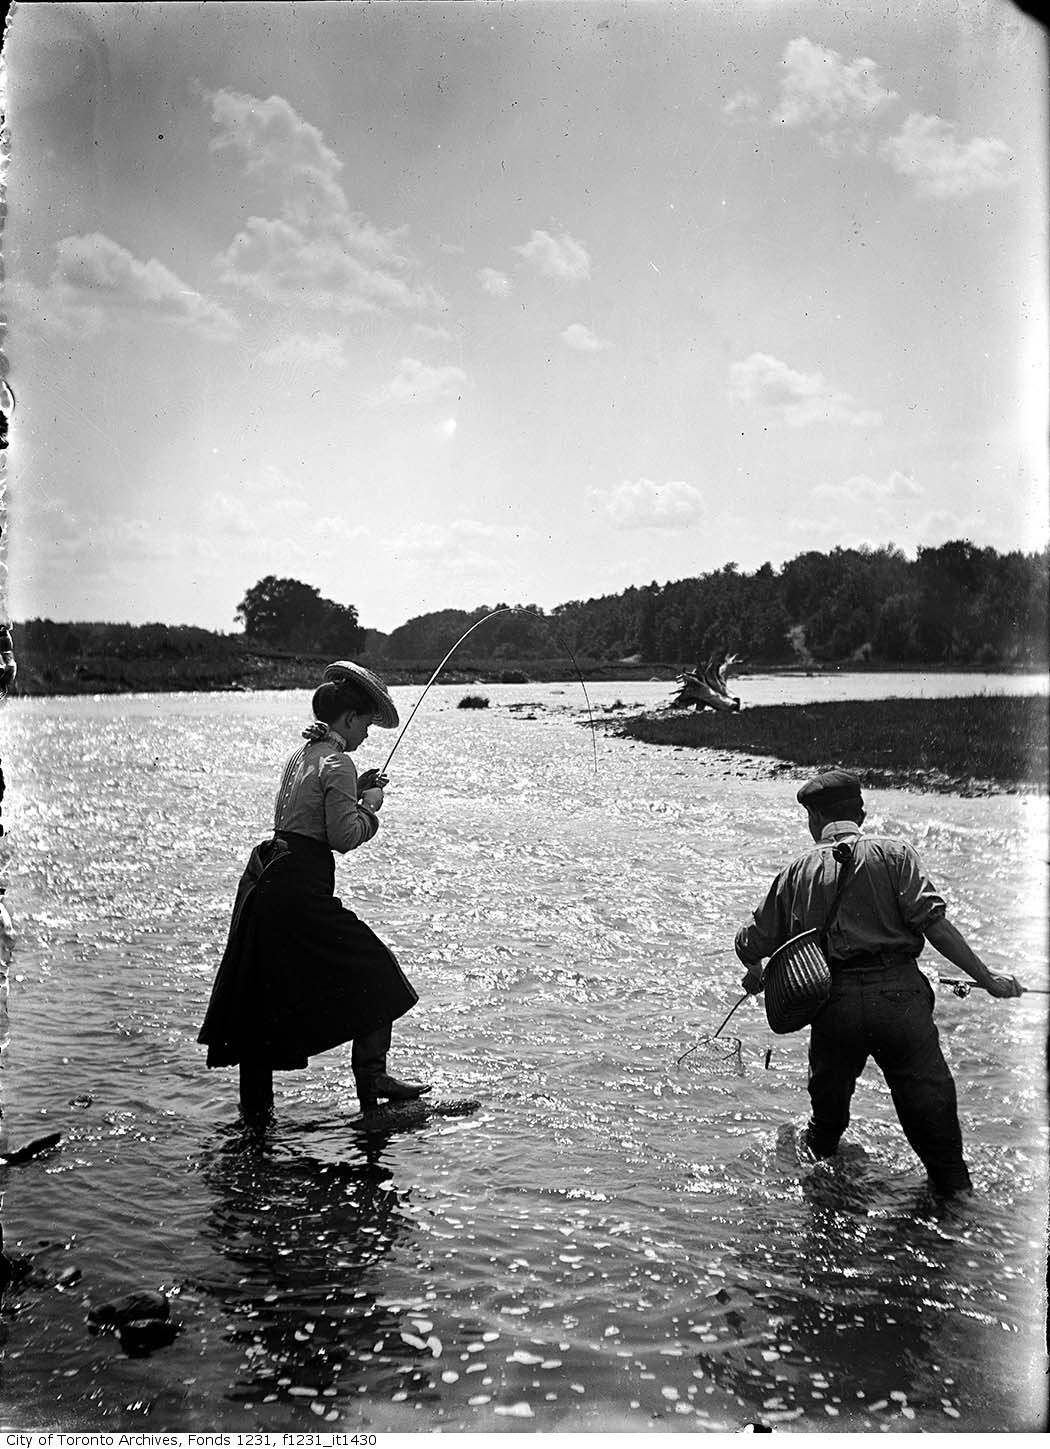 1902 - July - Man and woman fishing in the Credit River - Vintage Fishing Photographs